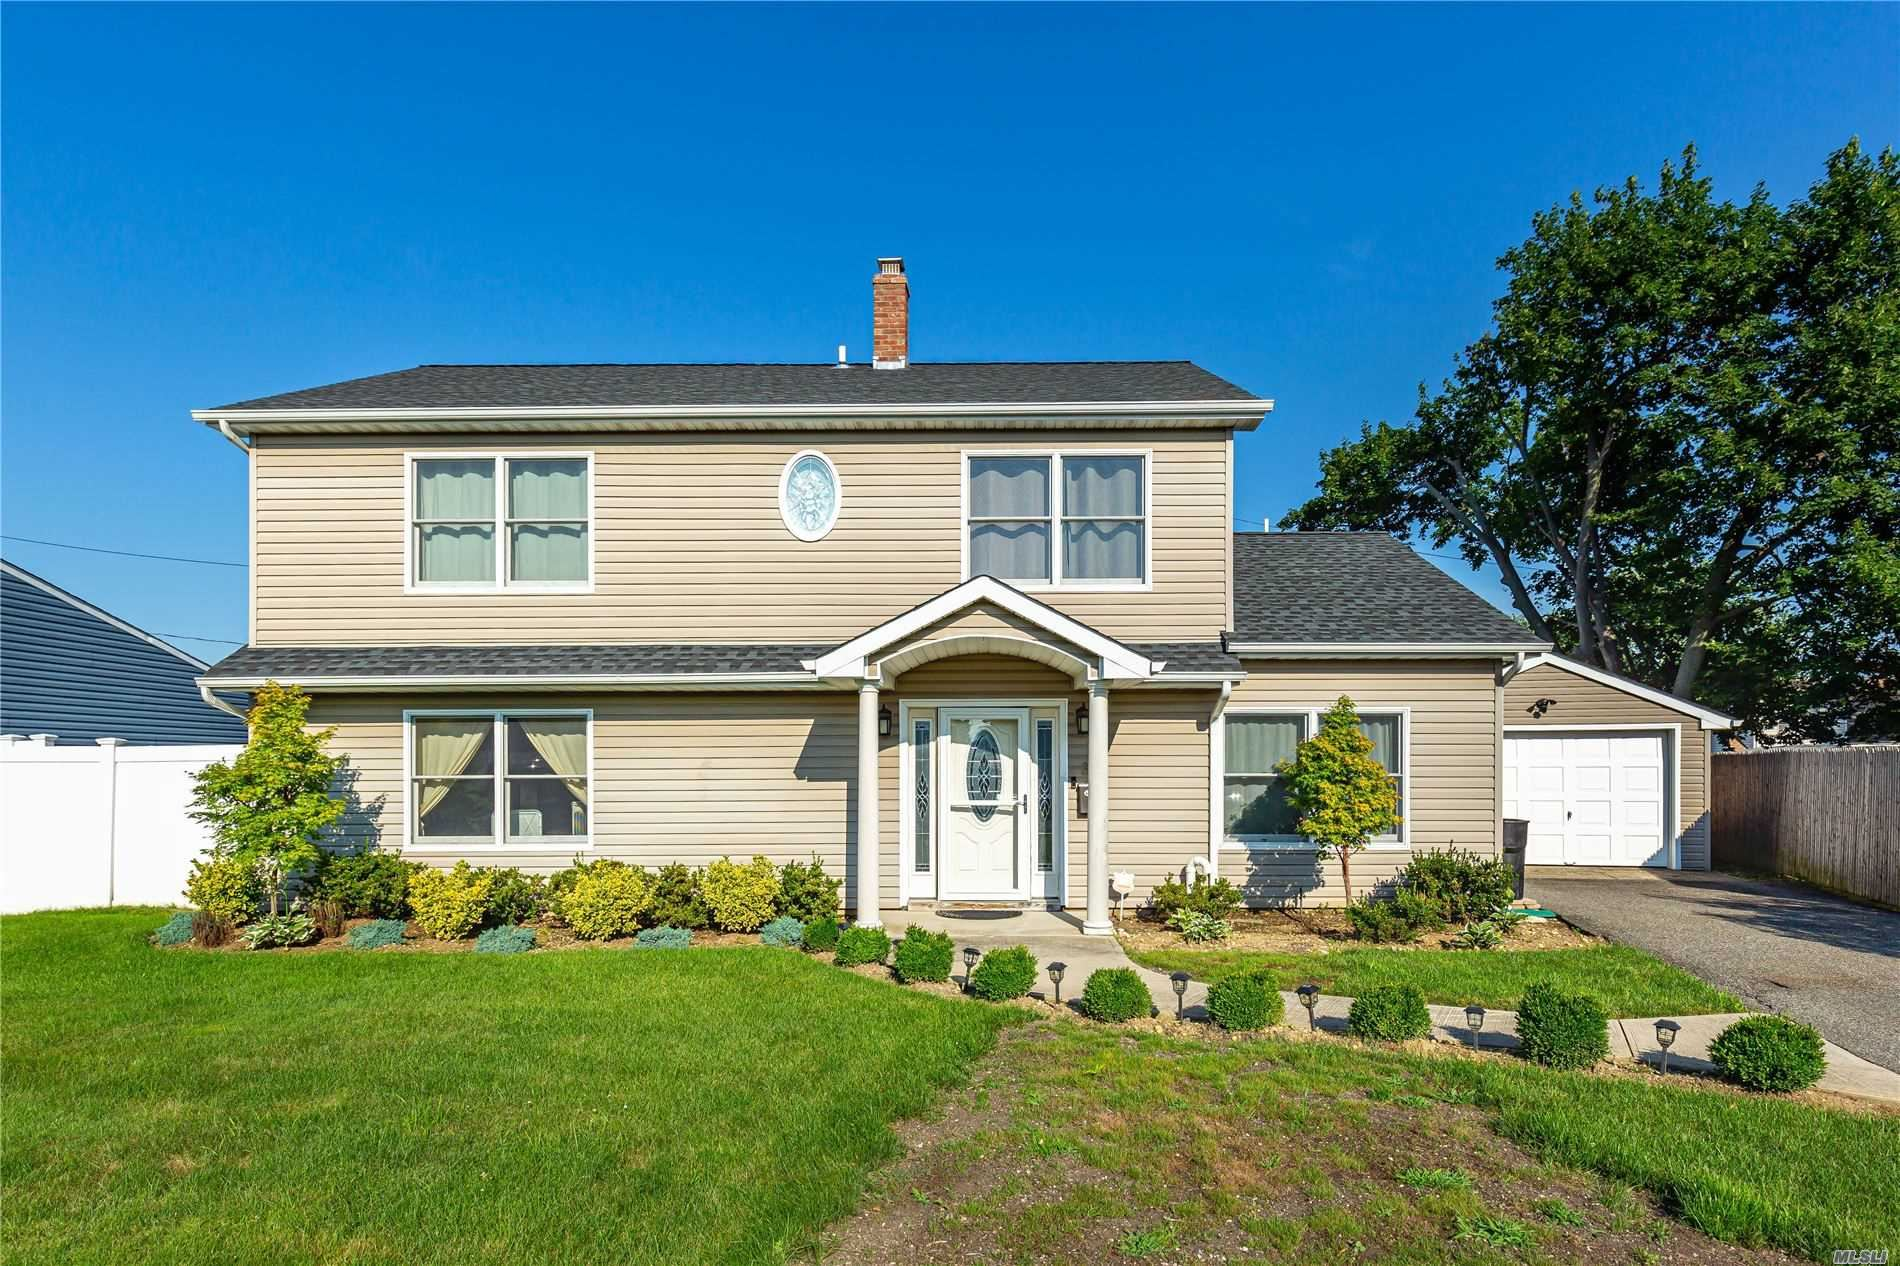 37 Candle Ln, Levittown, NY 11756 - MLS#: 3239729